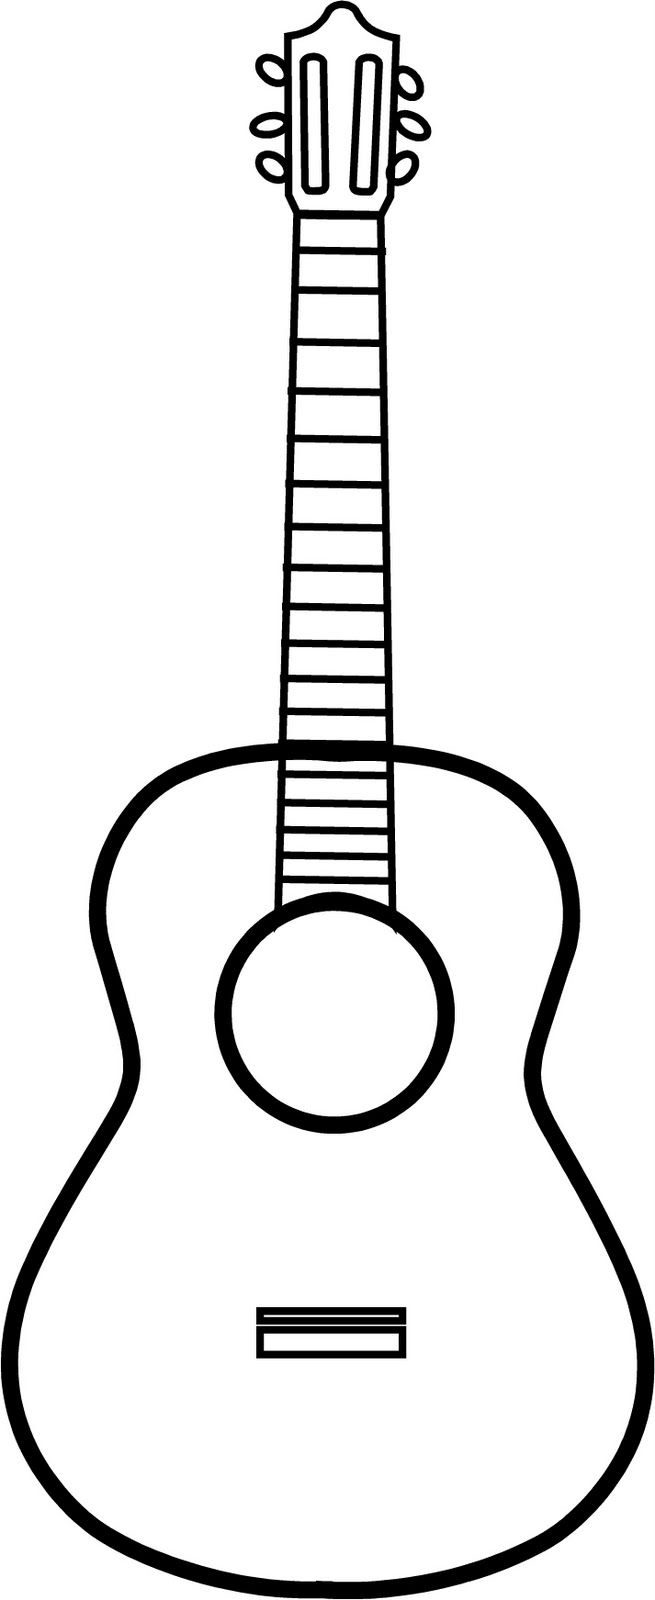 Dovetail template printable guitar - Guitar Outline Vinyl On The Go Guitar